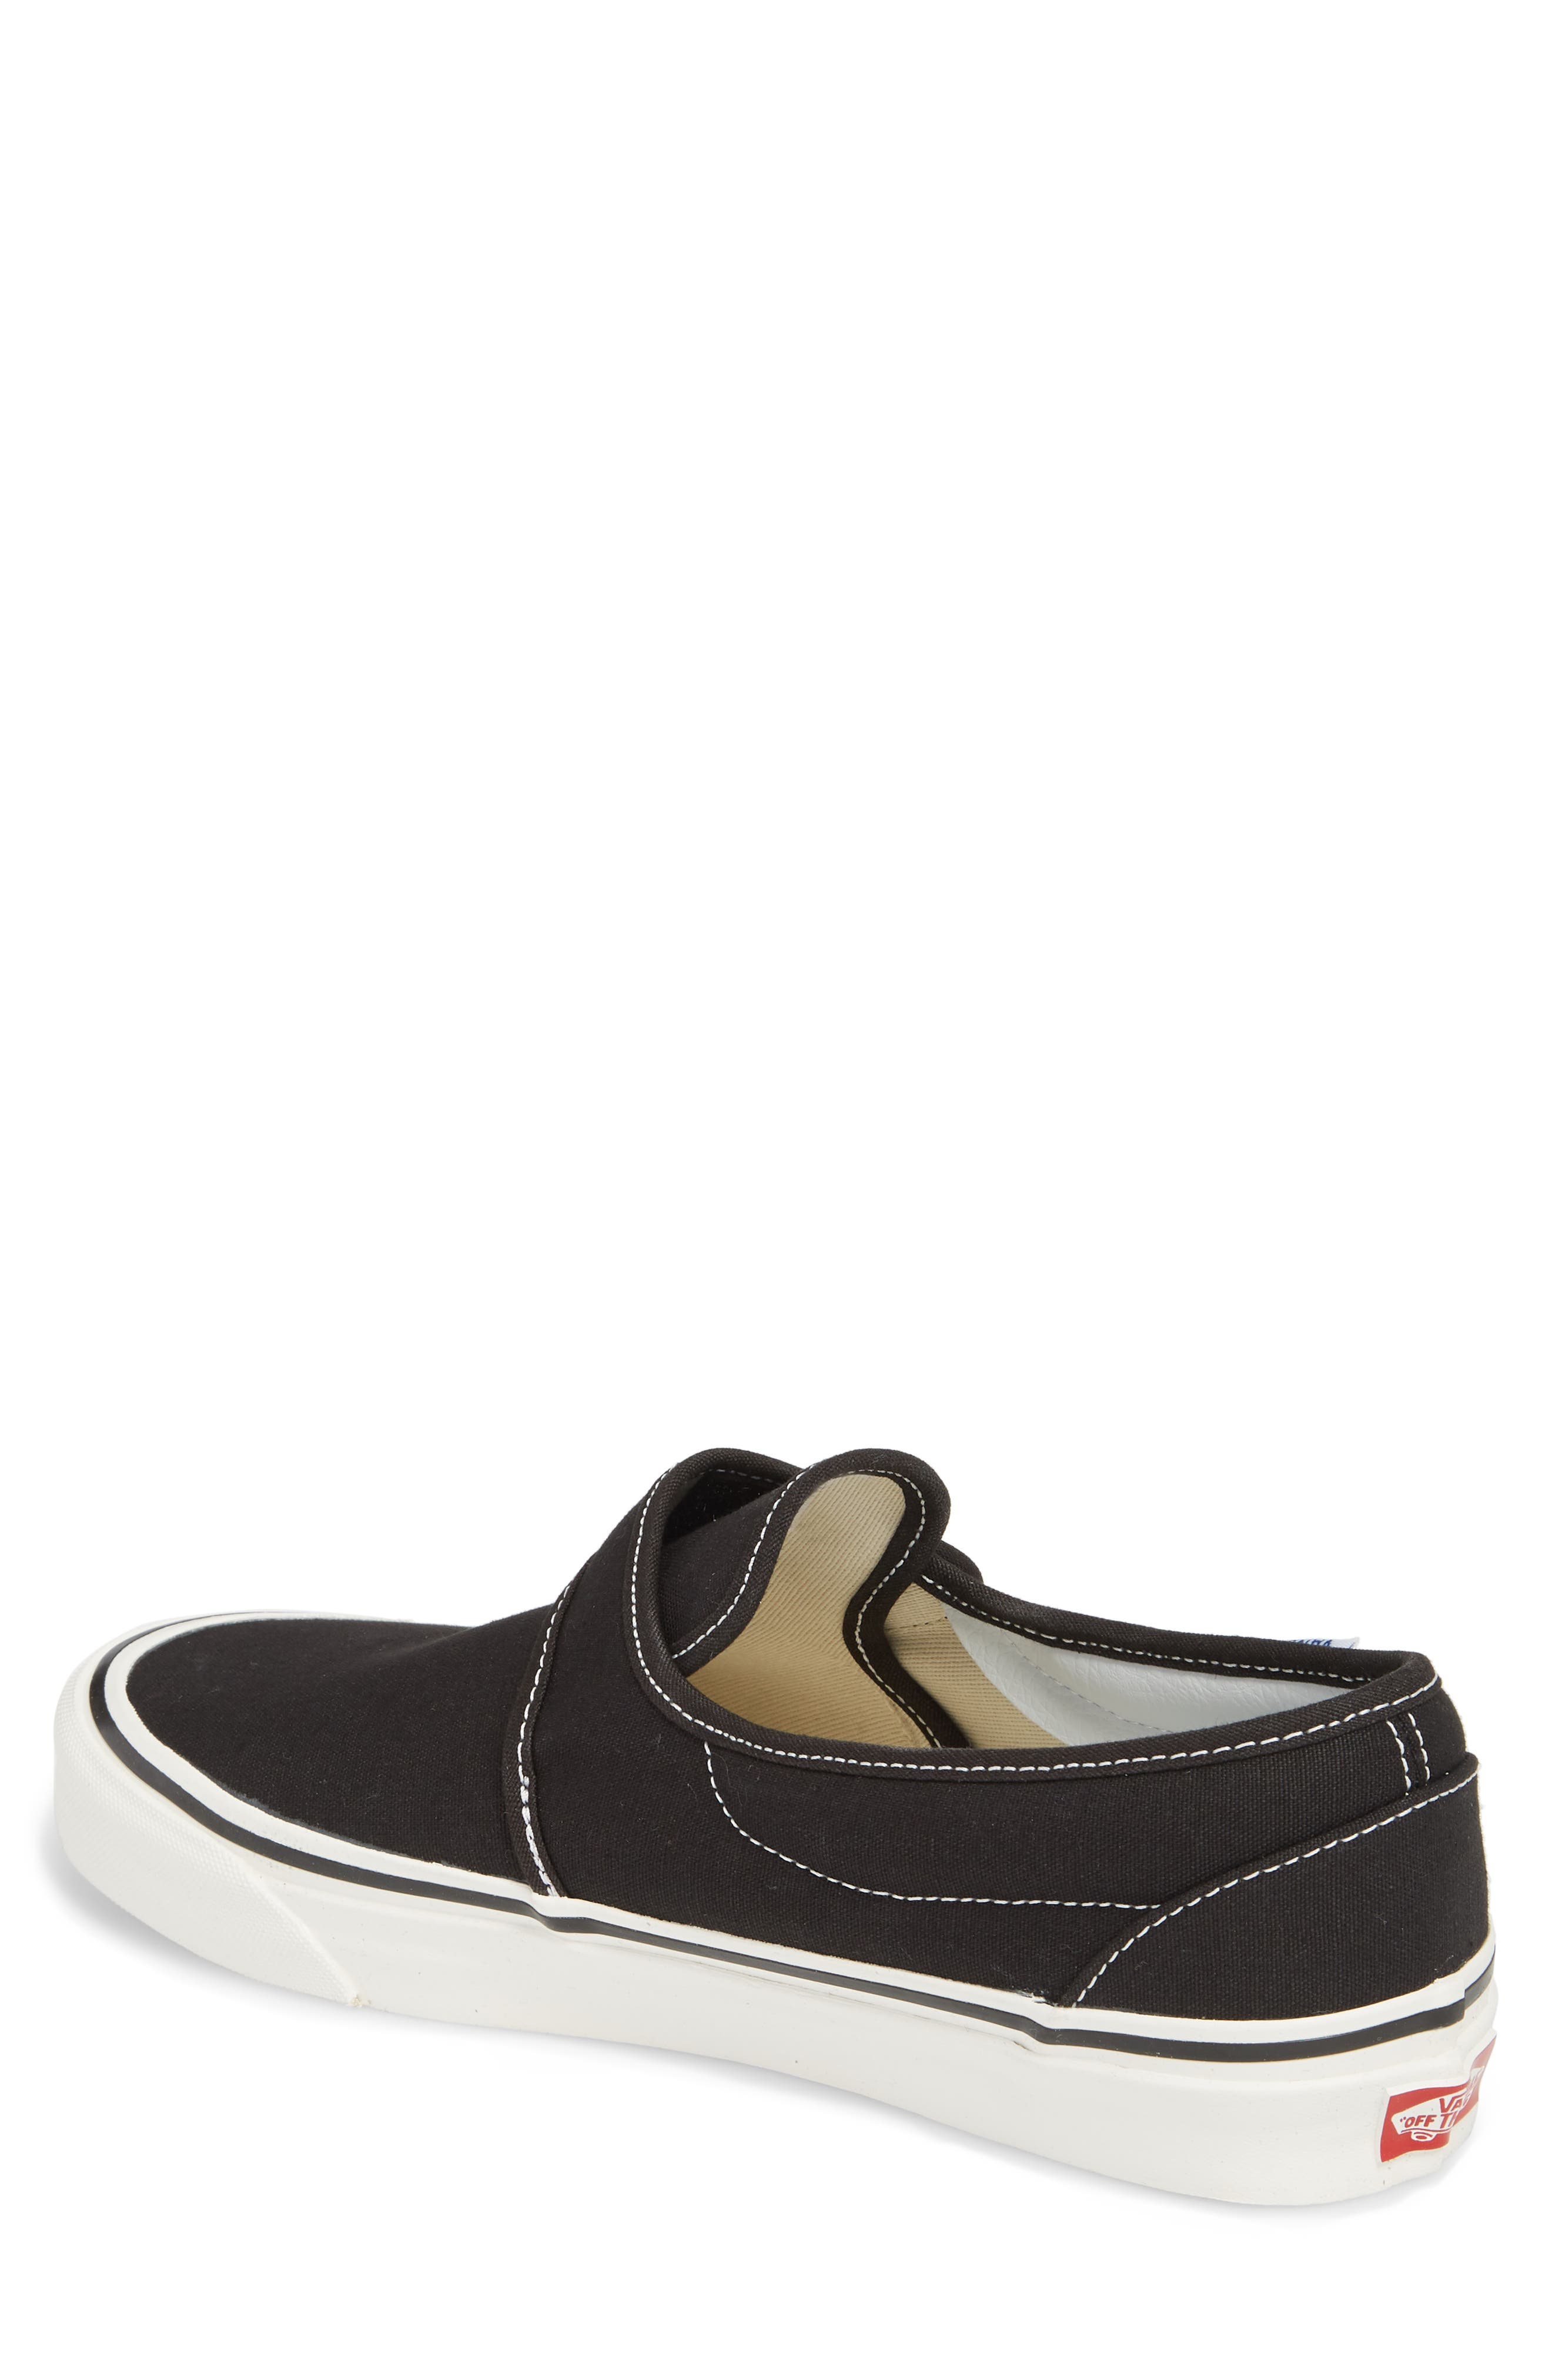 Anaheim Factory Slip-On 47 DX Sneaker,                             Alternate thumbnail 2, color,                             001